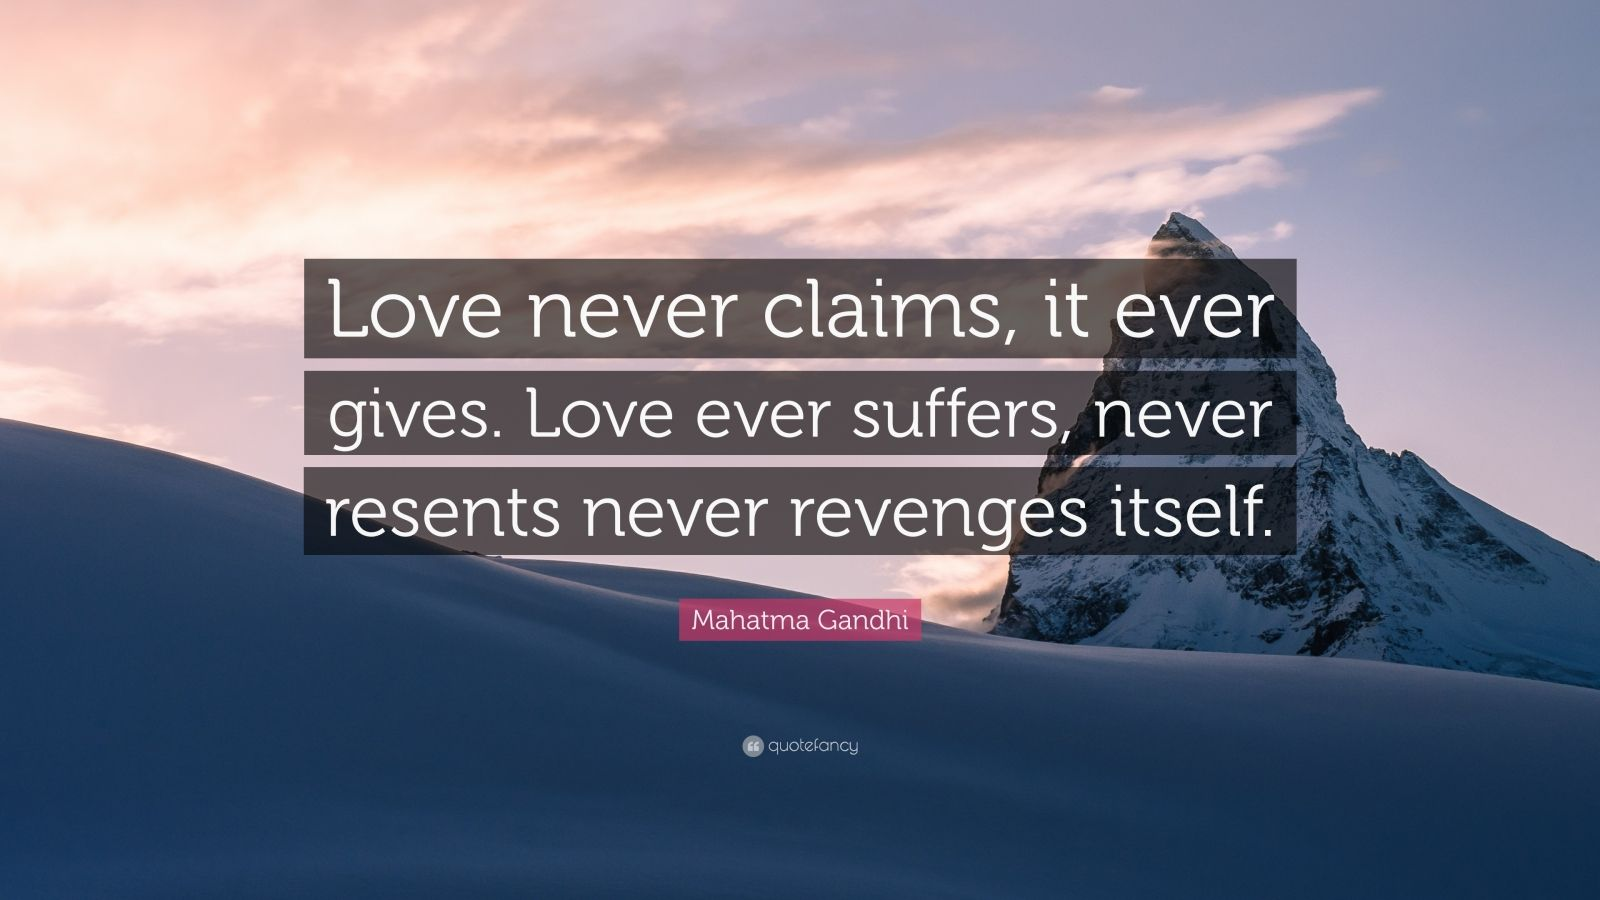 Love never claims, it ever gives. Love never suffers, never resents, never revenges itself